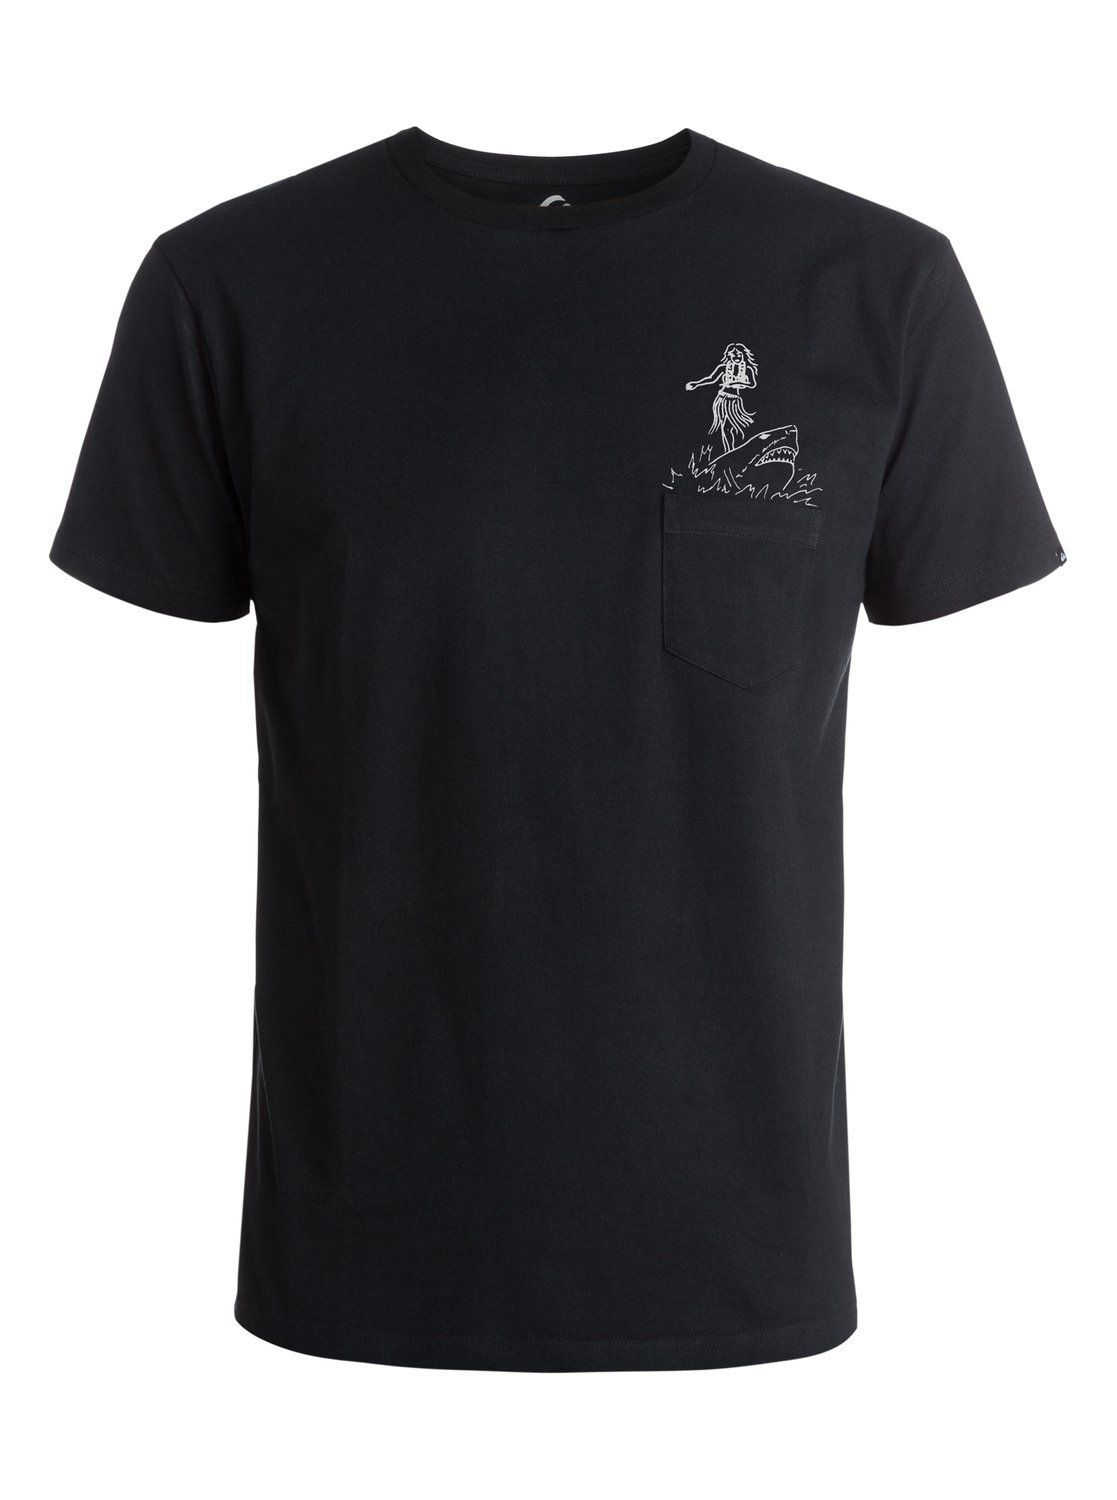 Quik Silver T-Shirt Pocket Pound Of Flesh